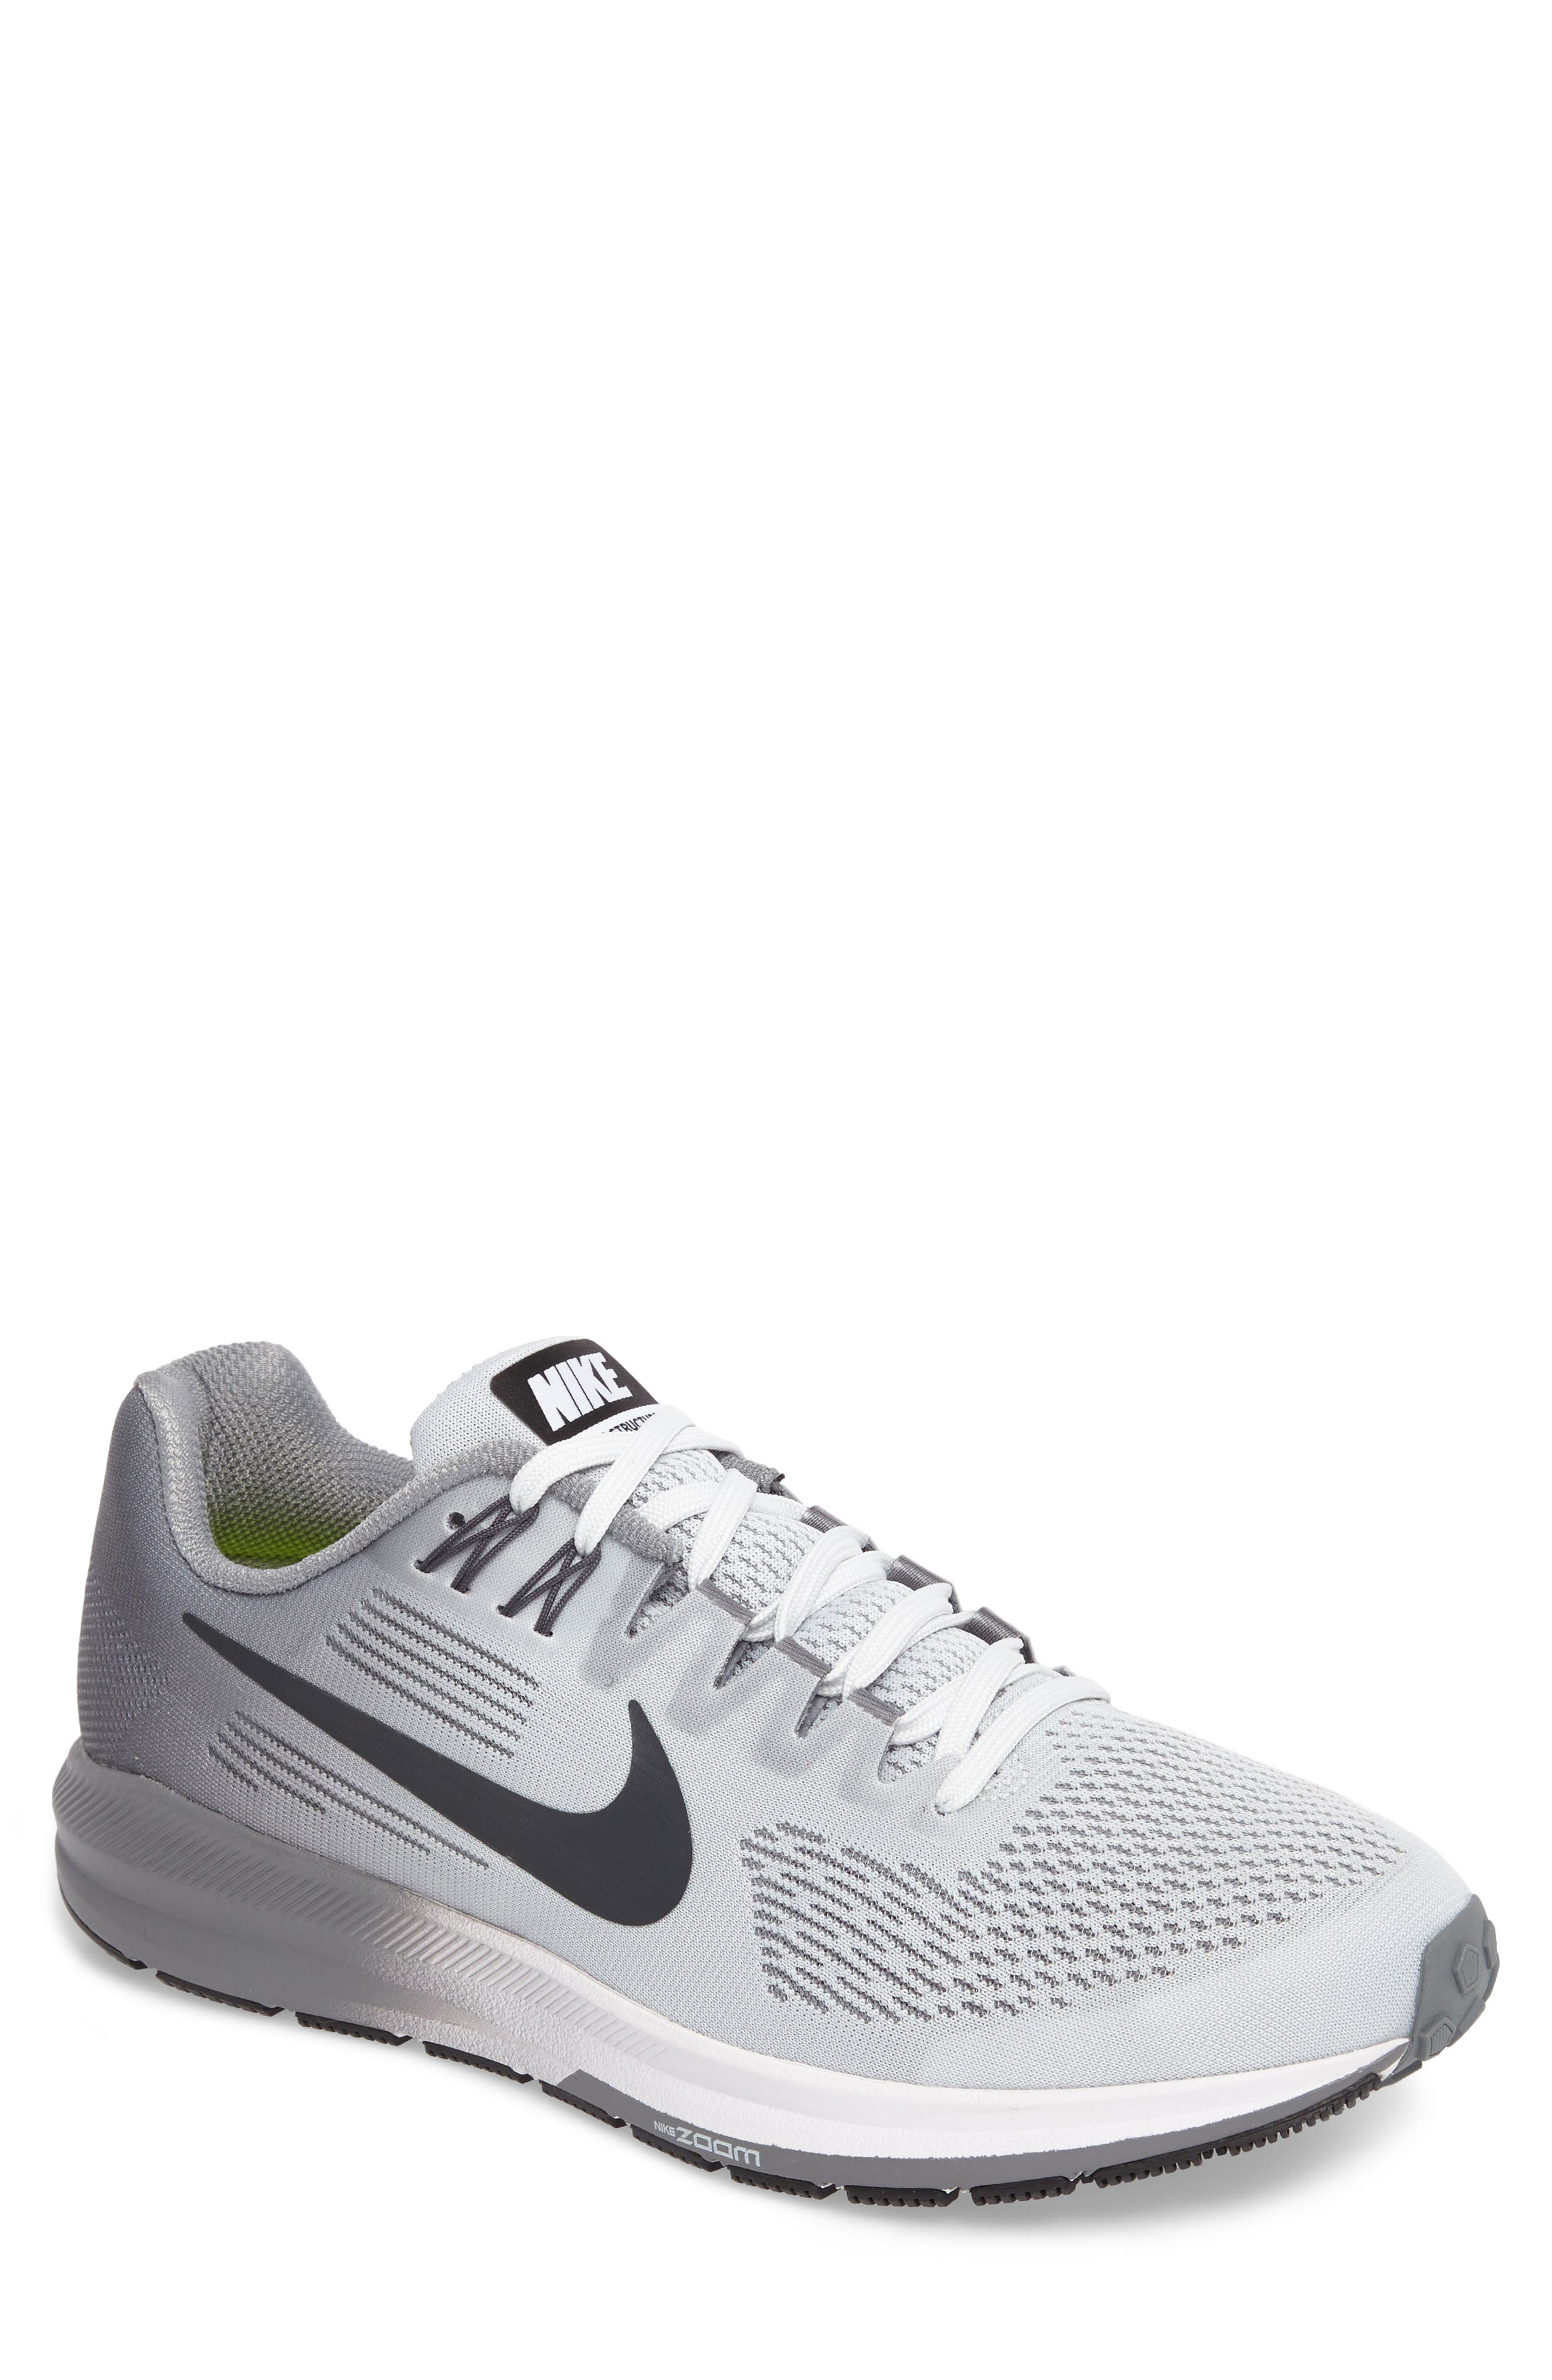 Air Zoom Structure 21 Running Shoe,                         Main,                         color, Platinum/Anthracite/Cool Grey